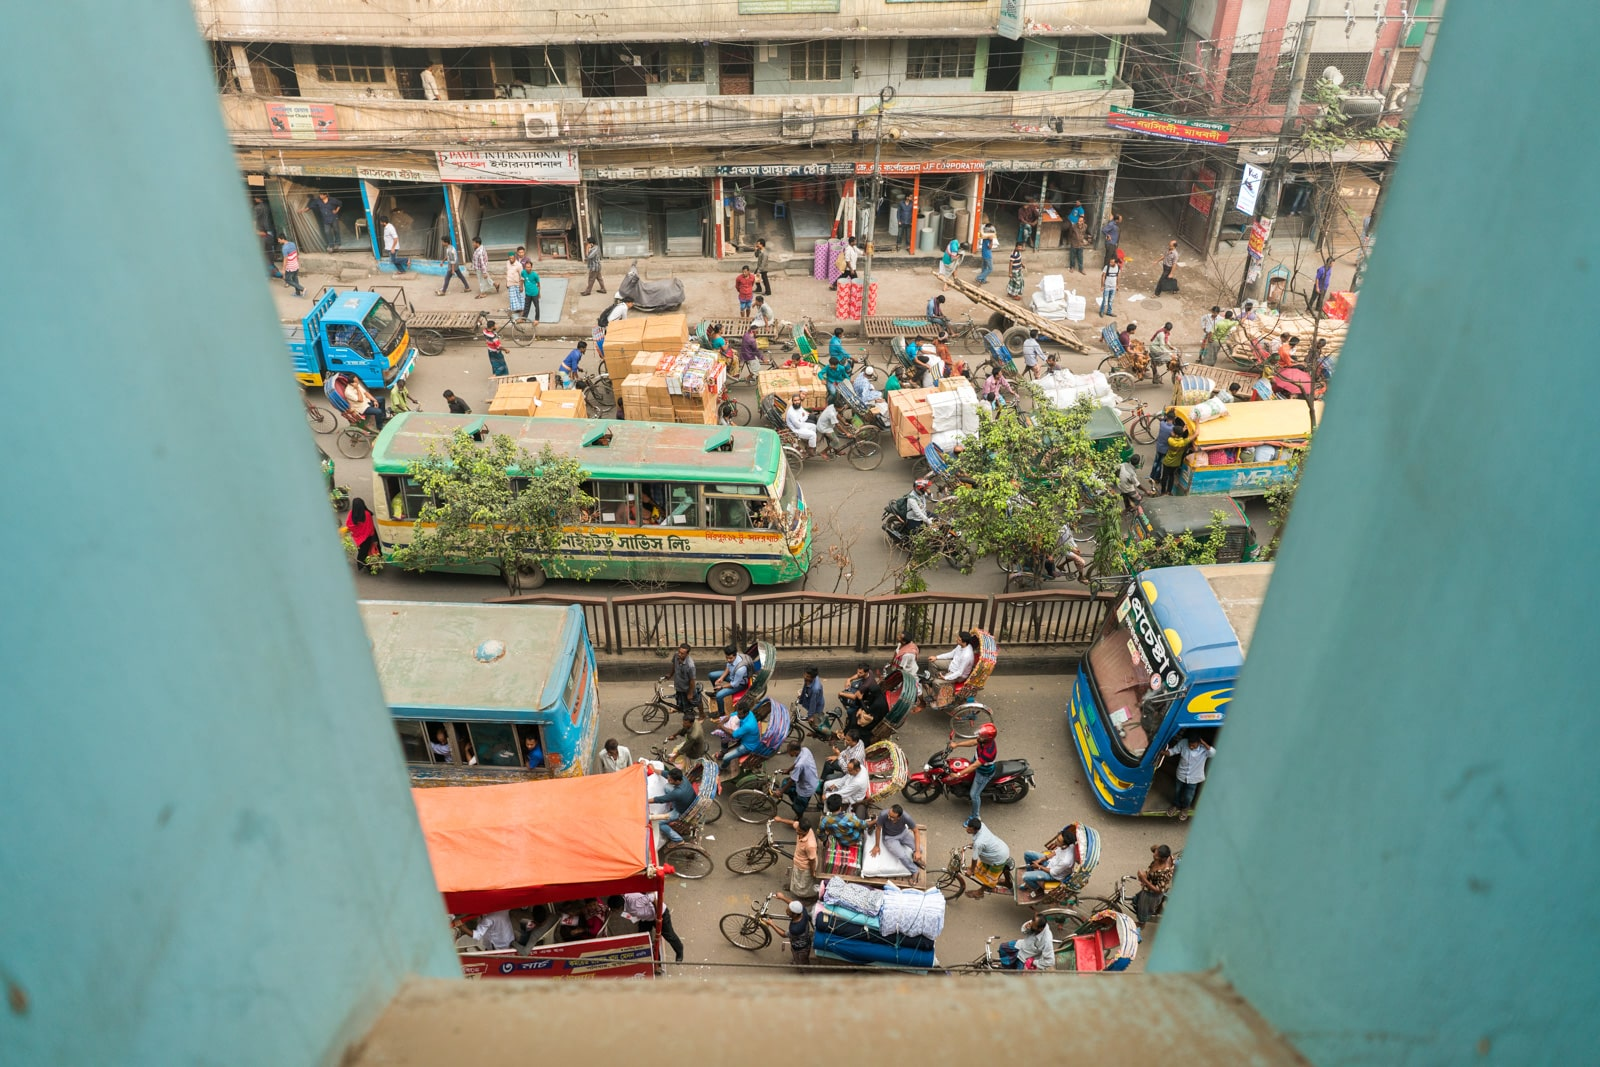 Backpacking in Bangladesh travel guide - View from window of Al Razzak Hotel in Dhaka - Lost With Purpose travel blog